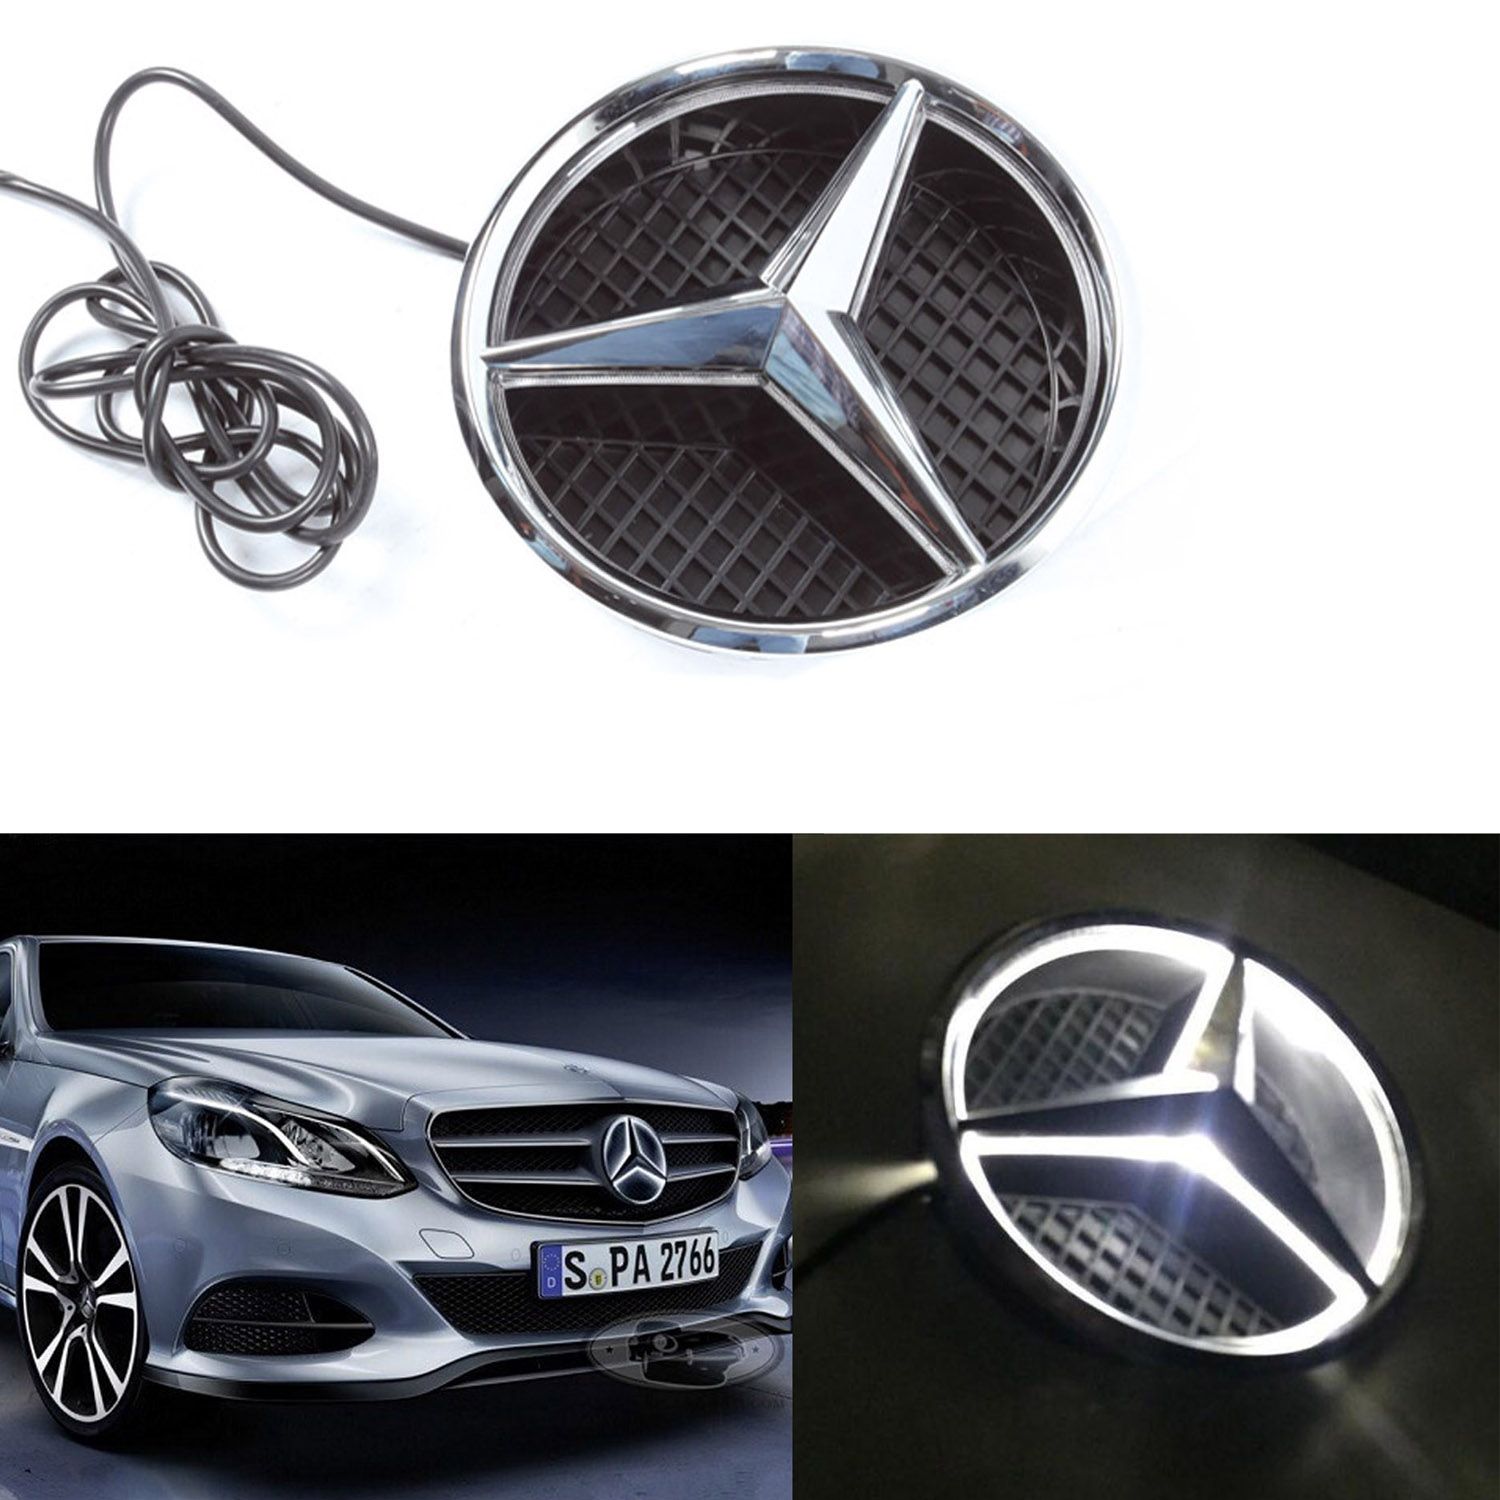 Illuminated led light front grille grill star emblem for for Illuminated star mercedes benz installation